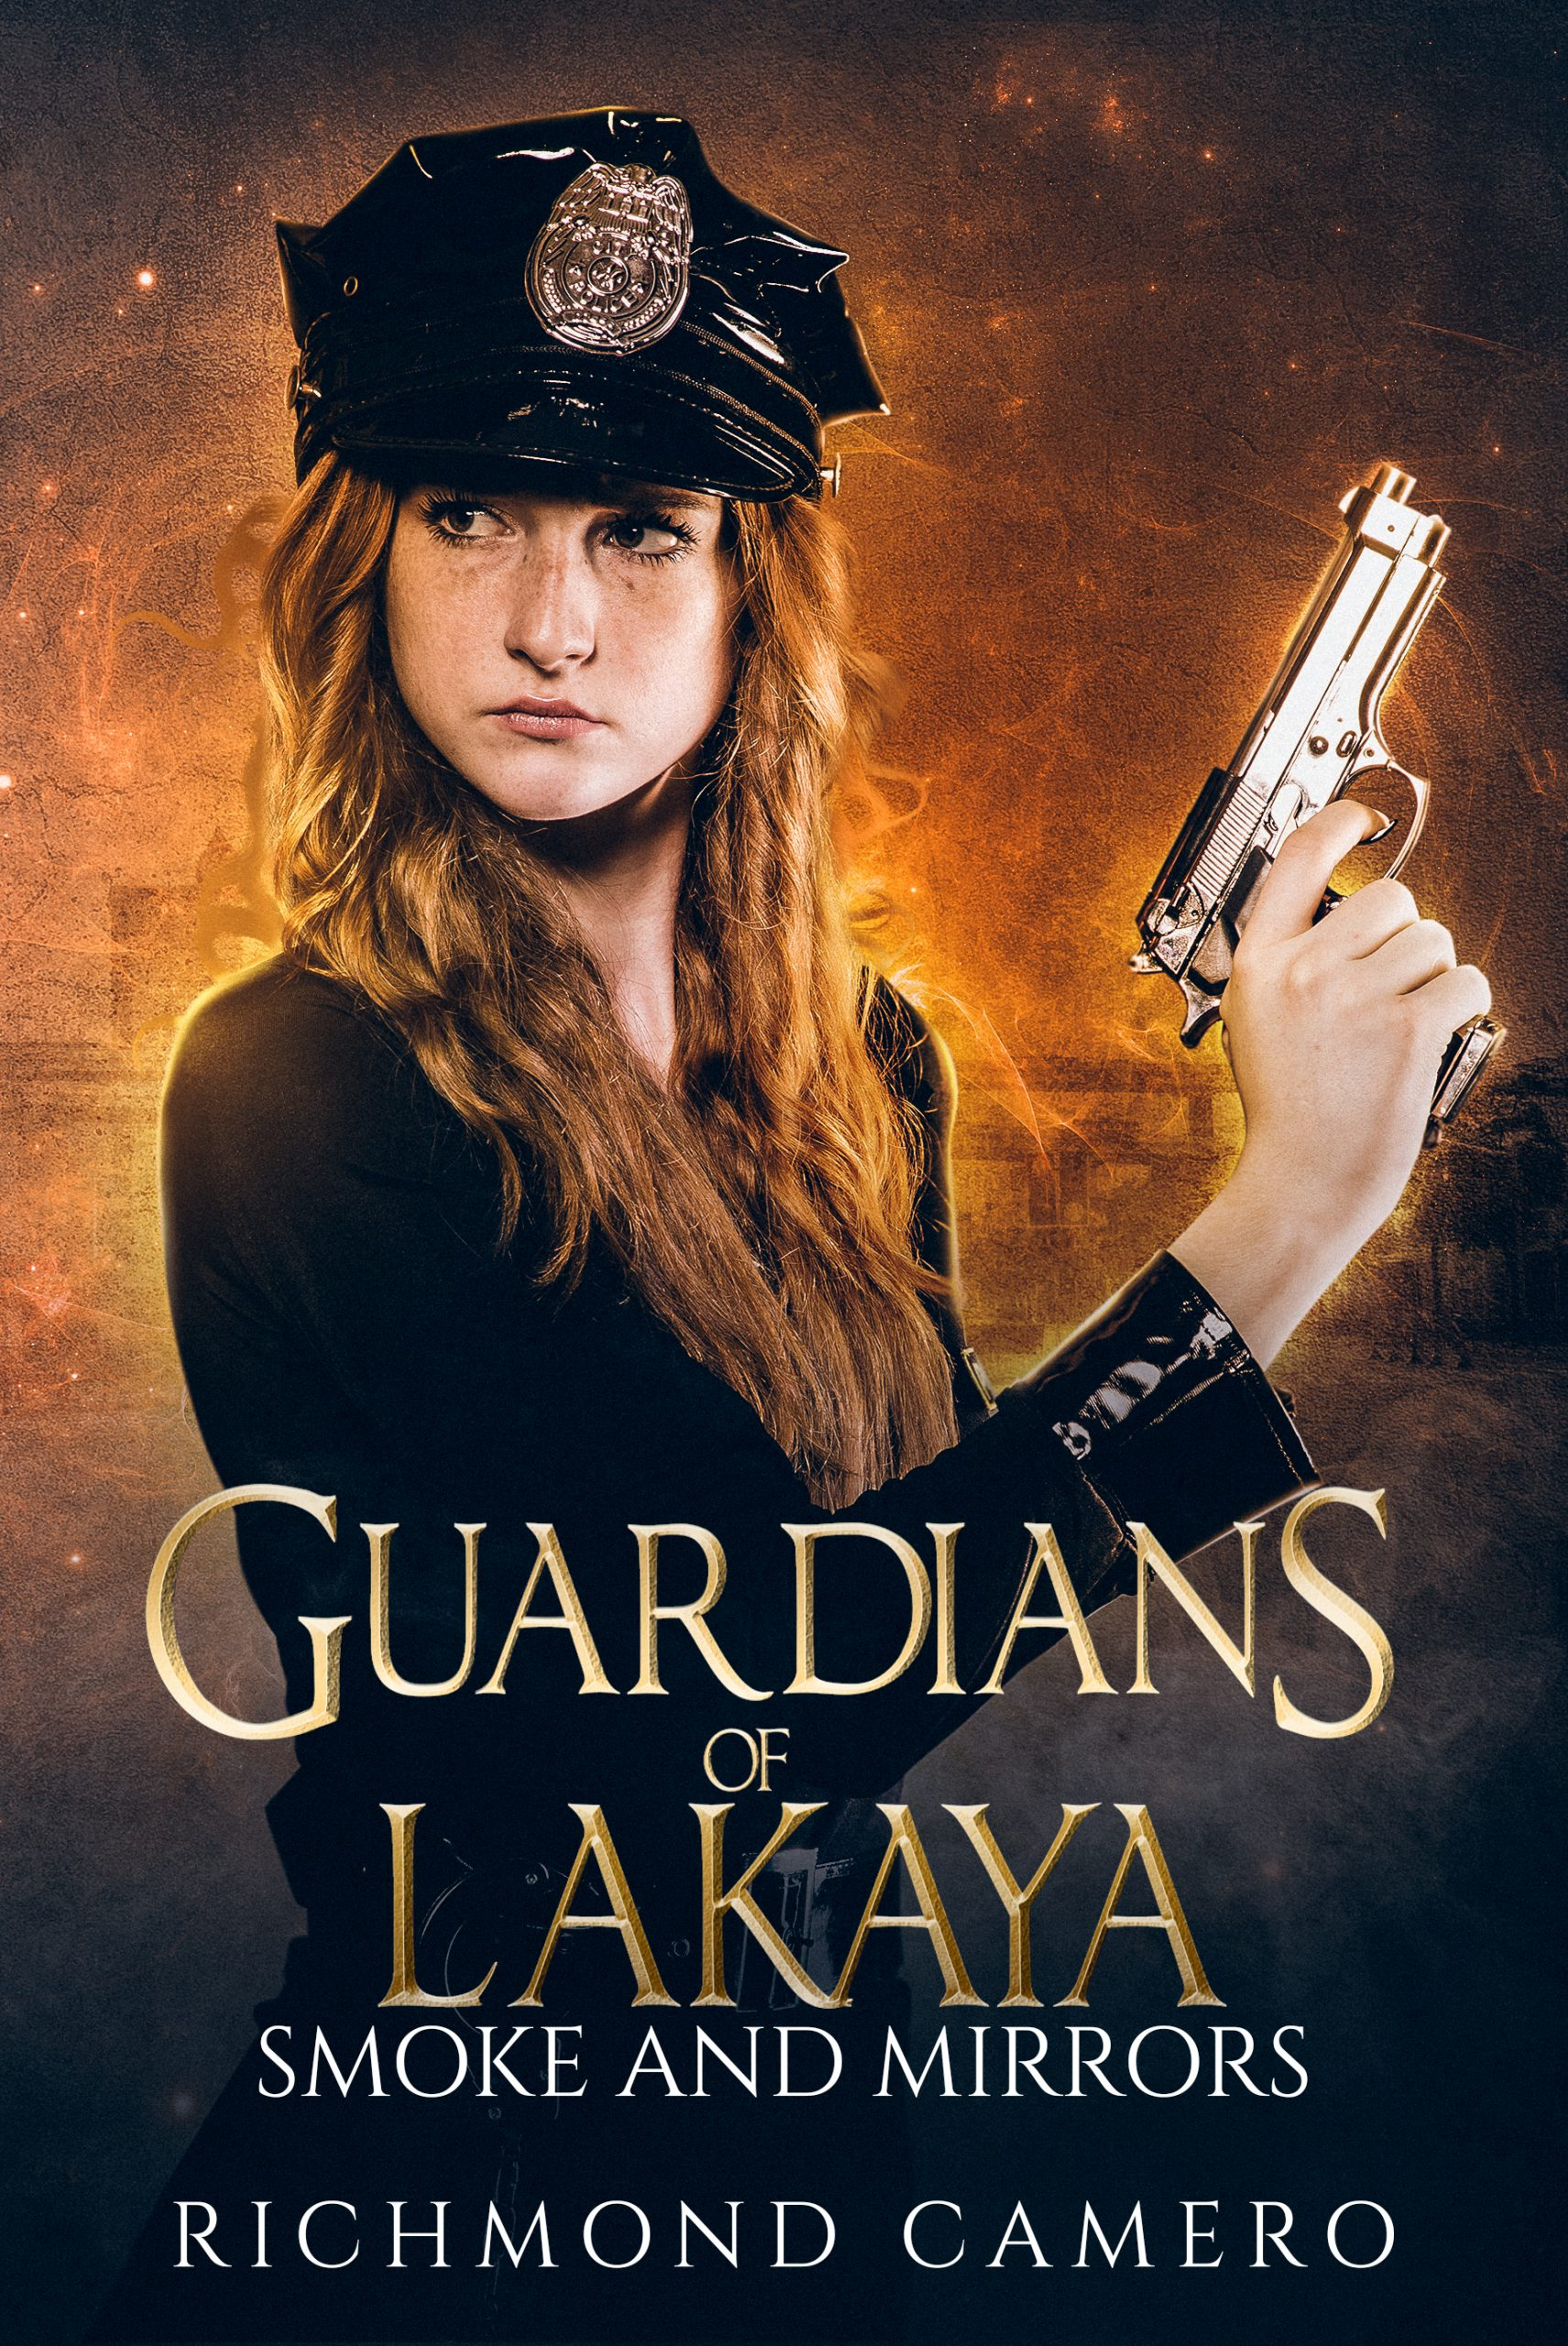 Guardians of Lakaya: Smoke and Mirrors